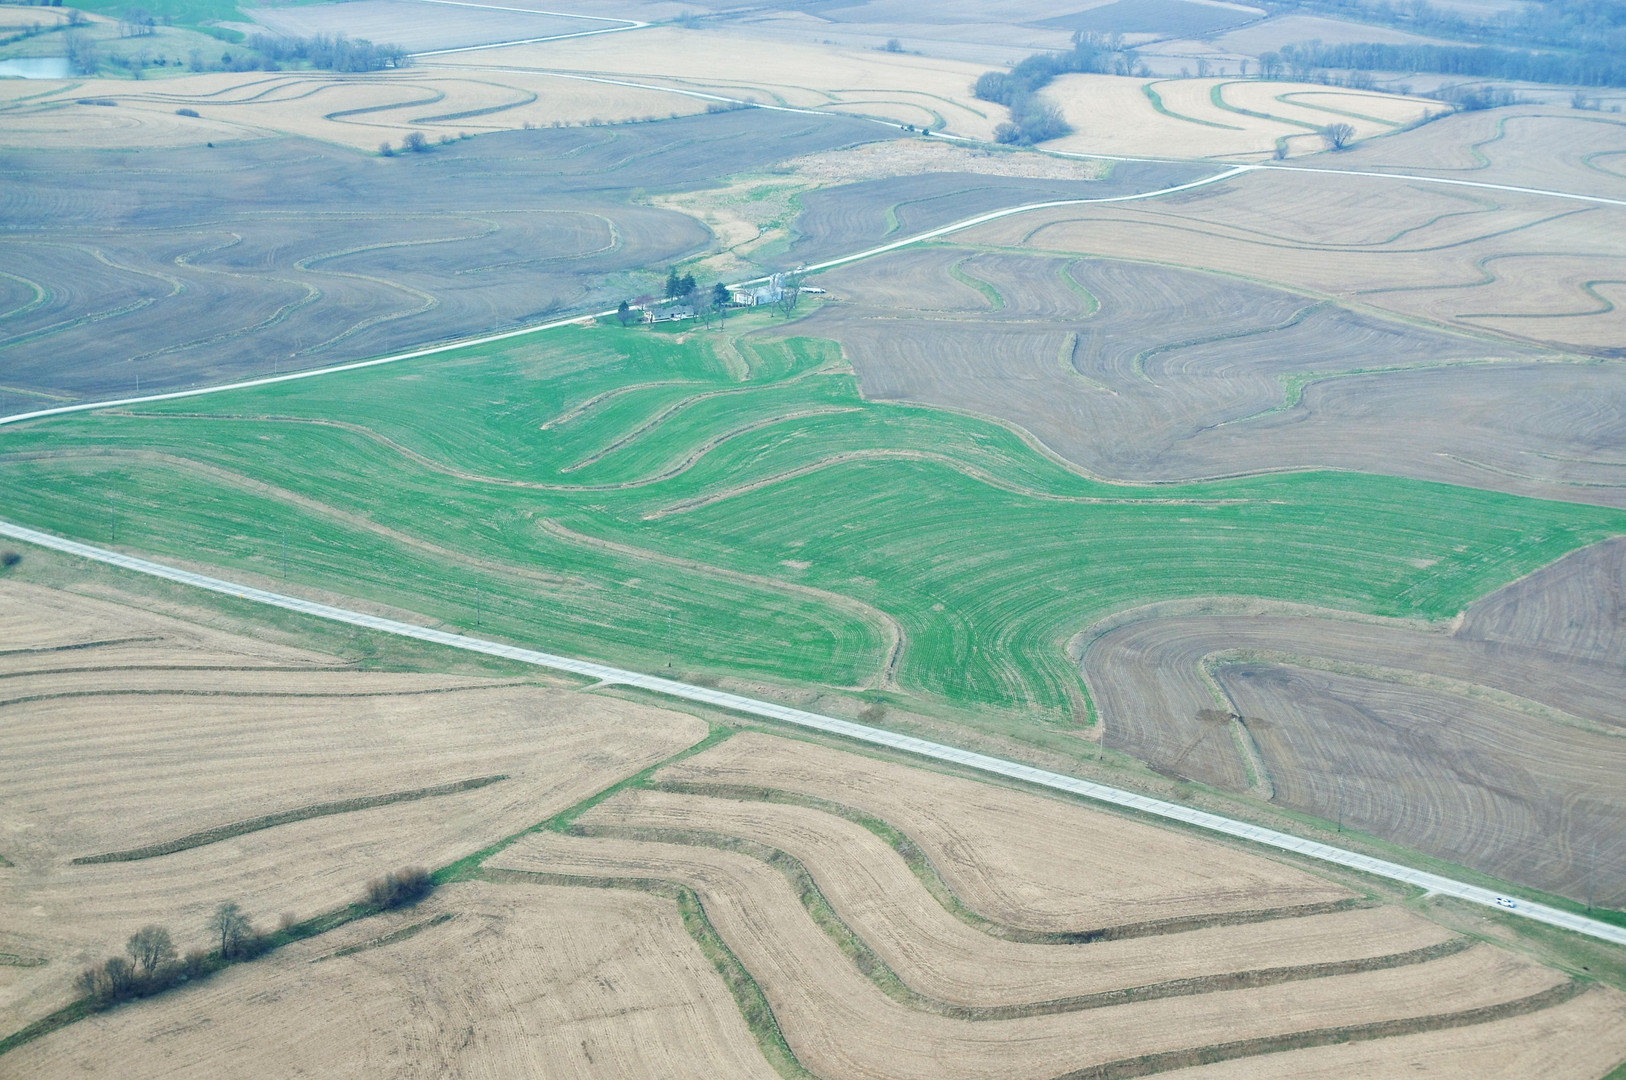 Aerial photo of land terracing submitted by Dan Case, Environmental Specialist